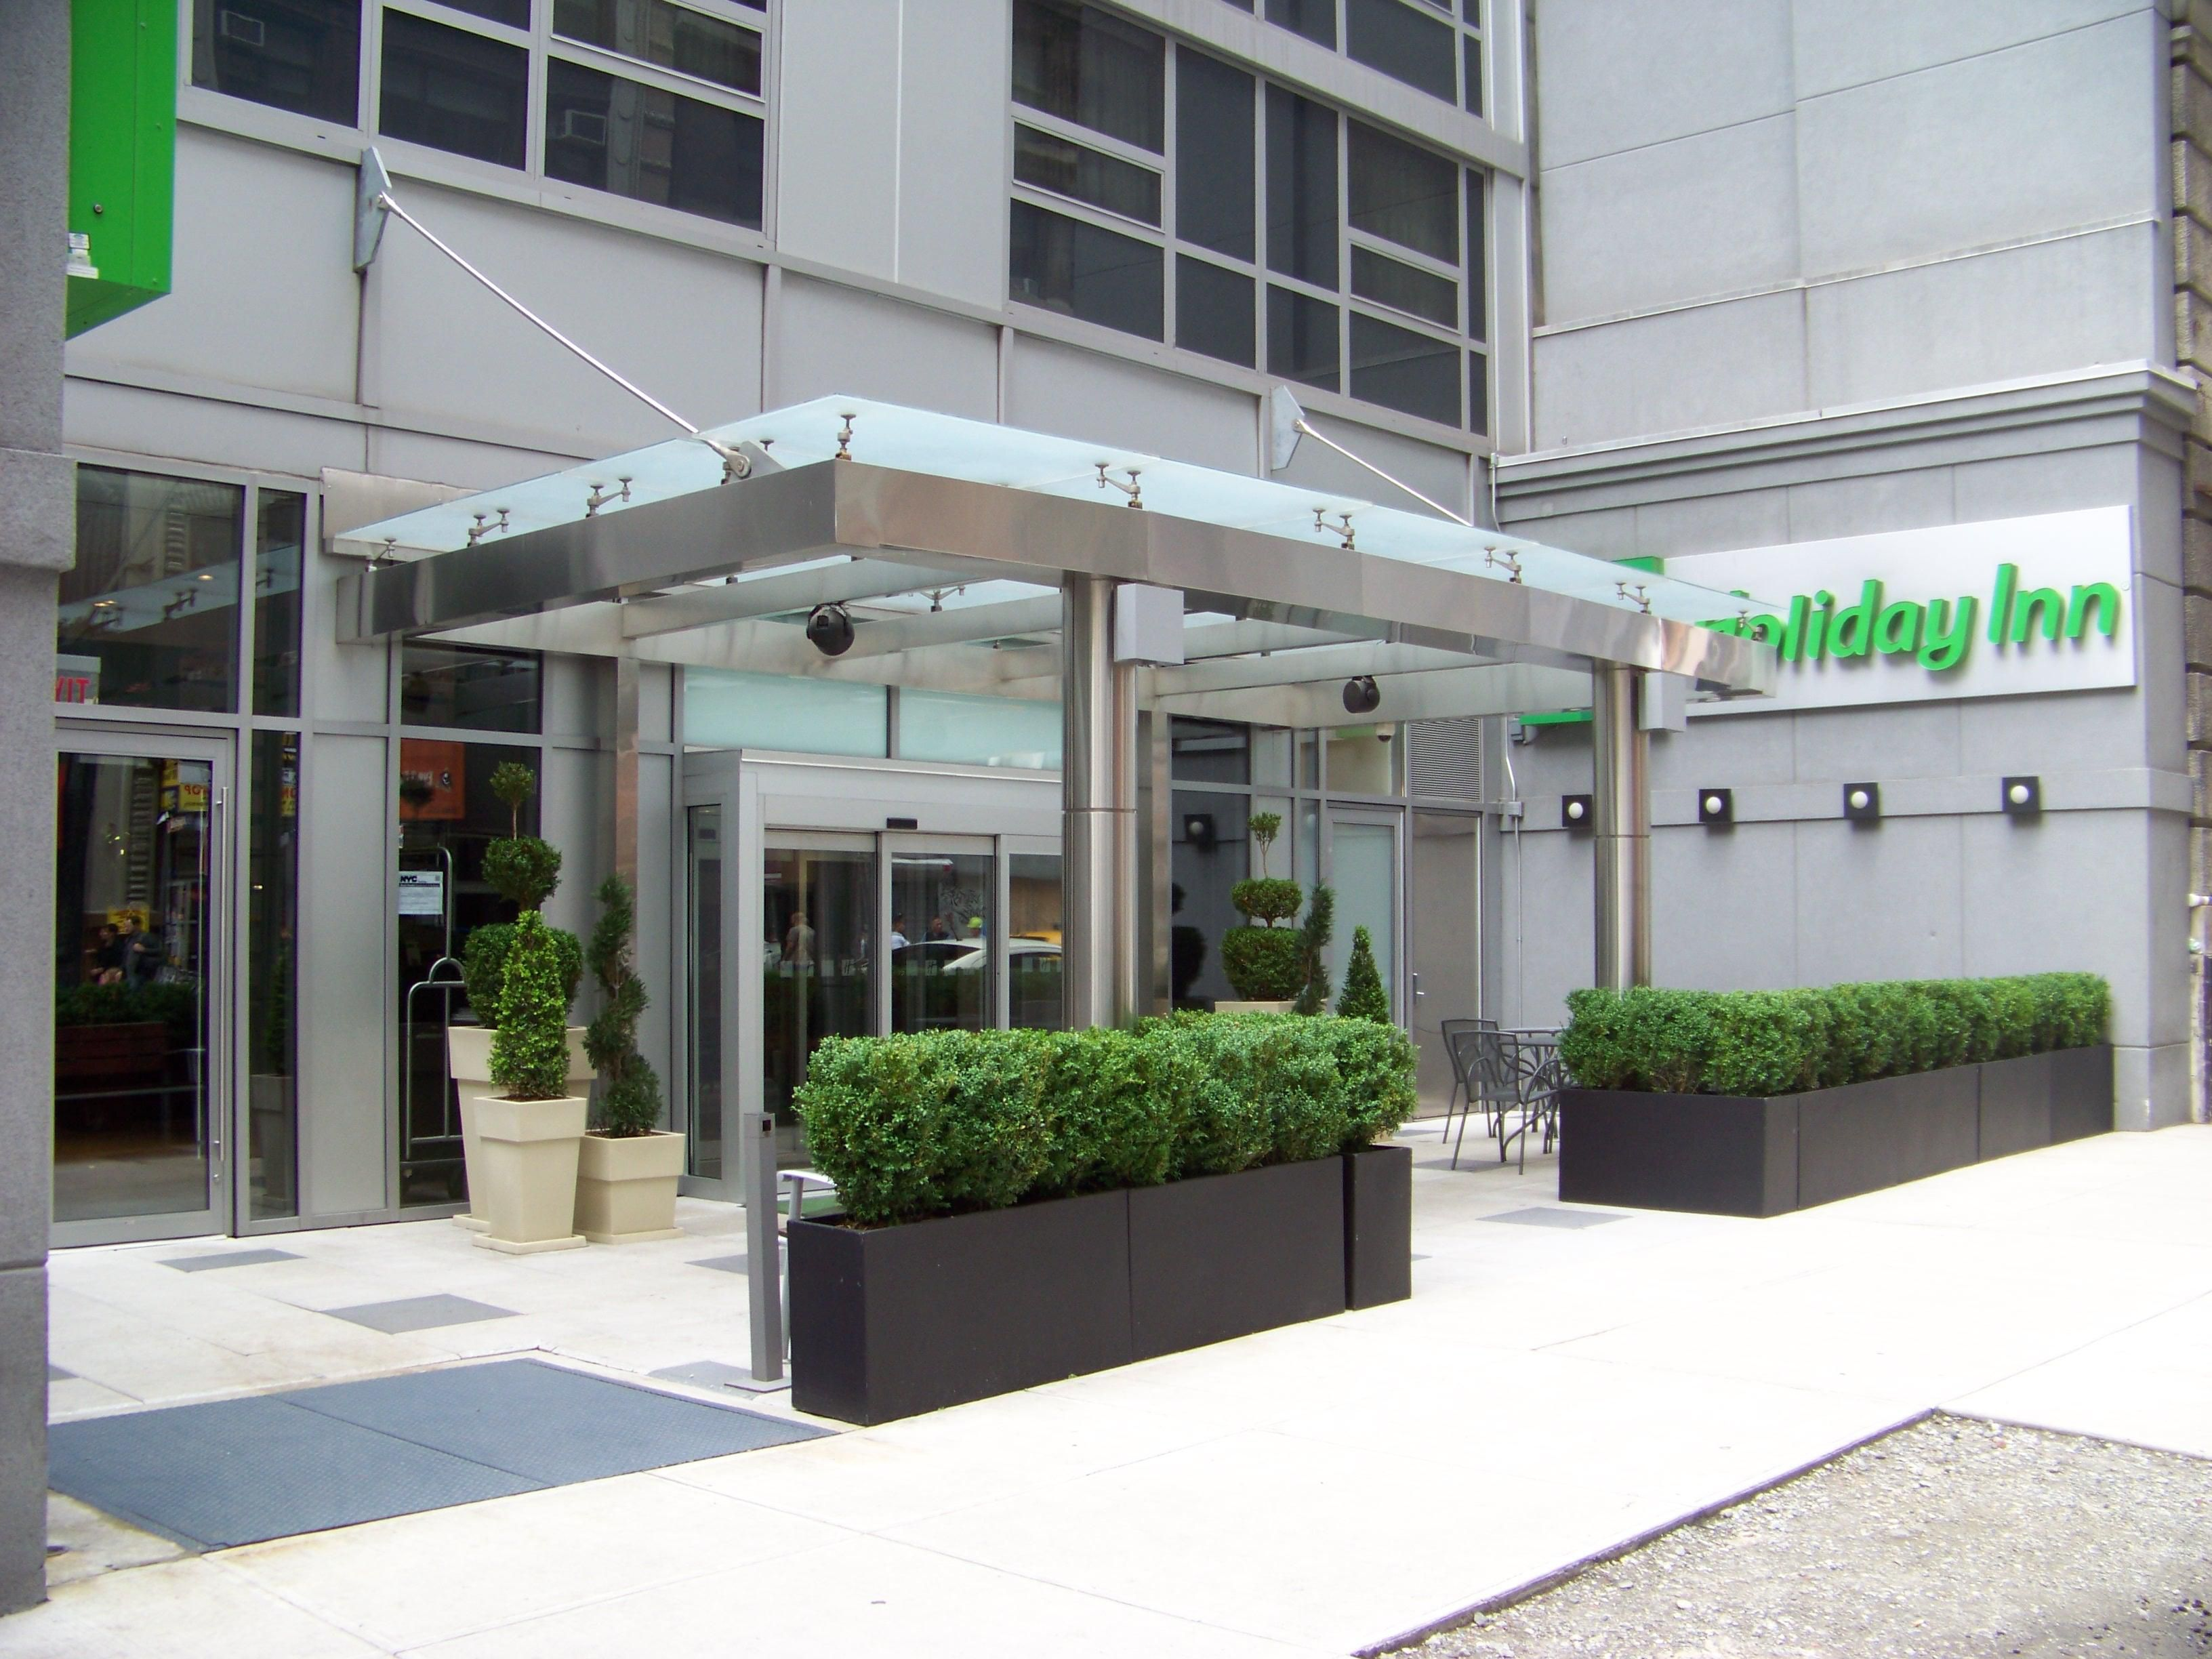 Welcome to the Holiday Inn Midtown